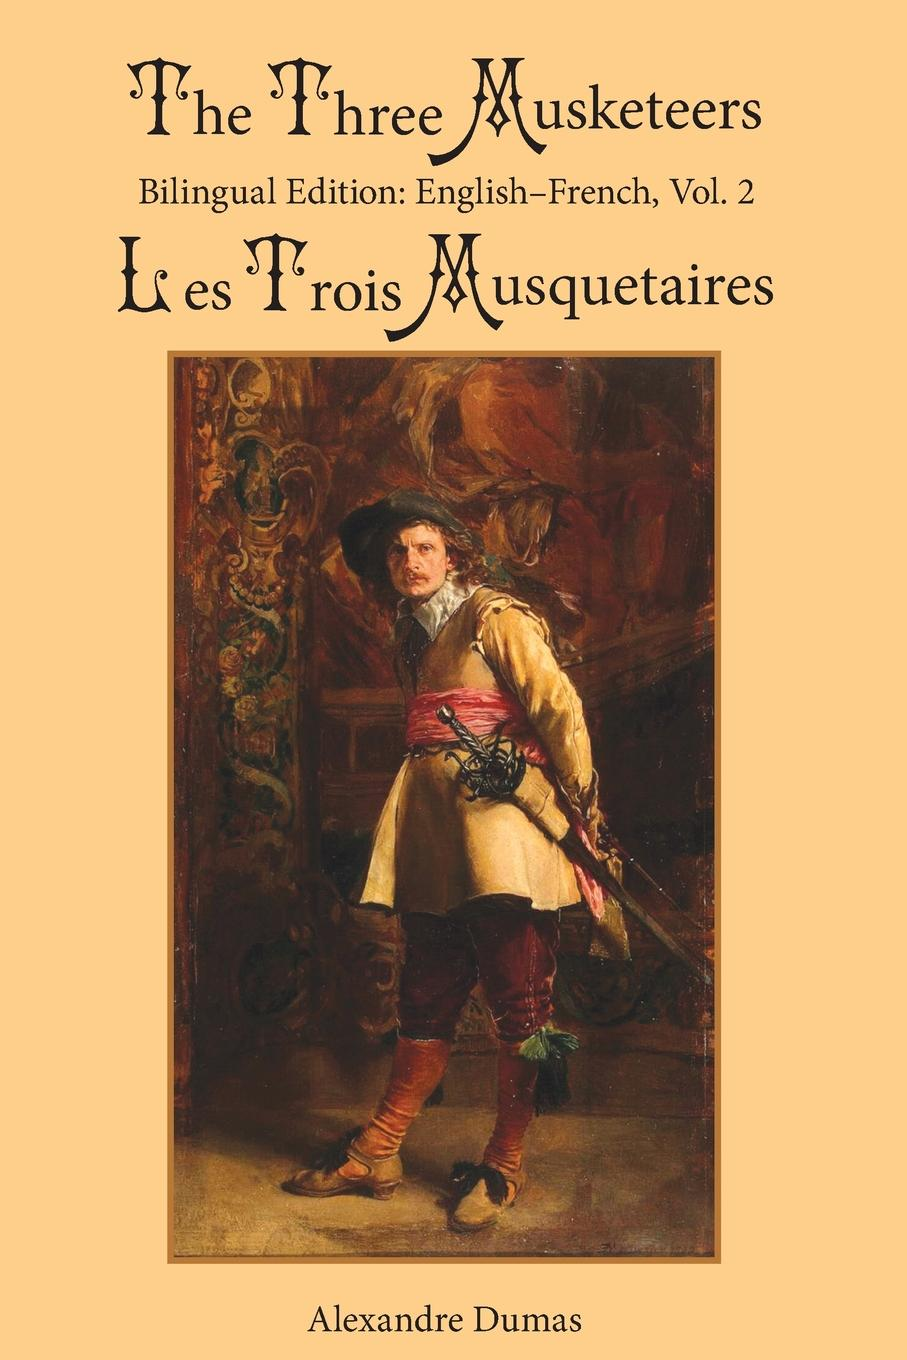 Александр Дюма, William Robson The Three Musketeers, Vol. 2. Bilingual Edition: English-French french in one click book with cd